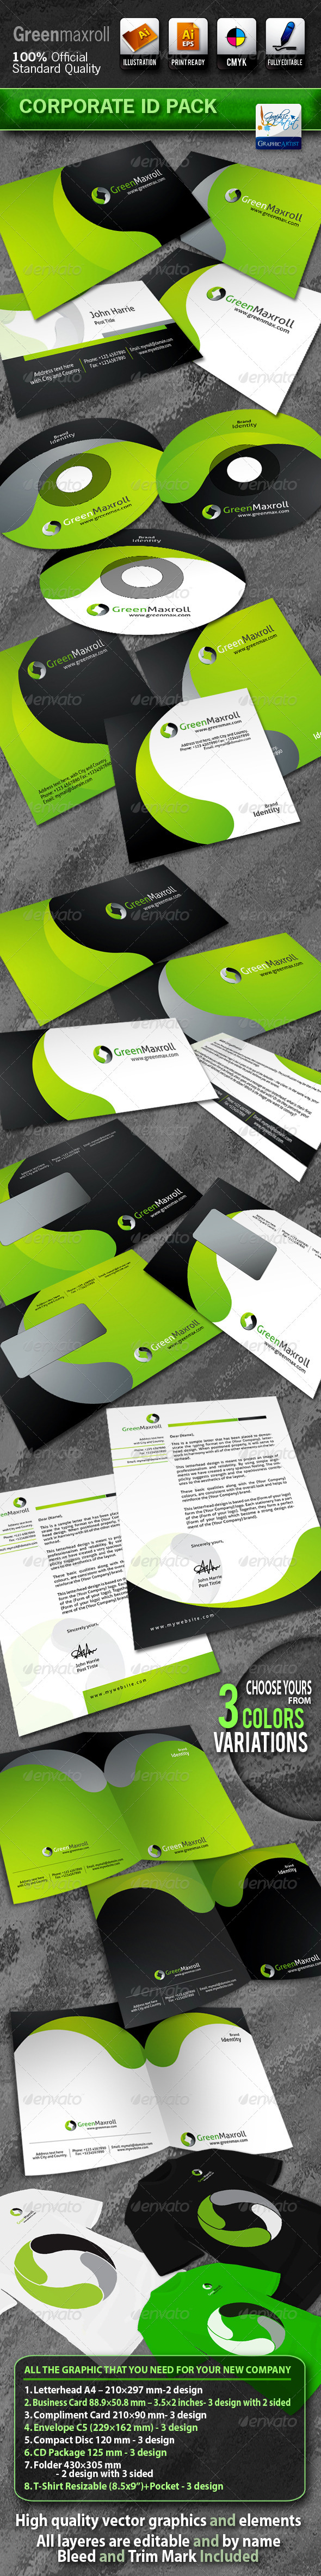 GreenMaxroll Business Corporate ID Pack With Logo - Stationery Print Templates